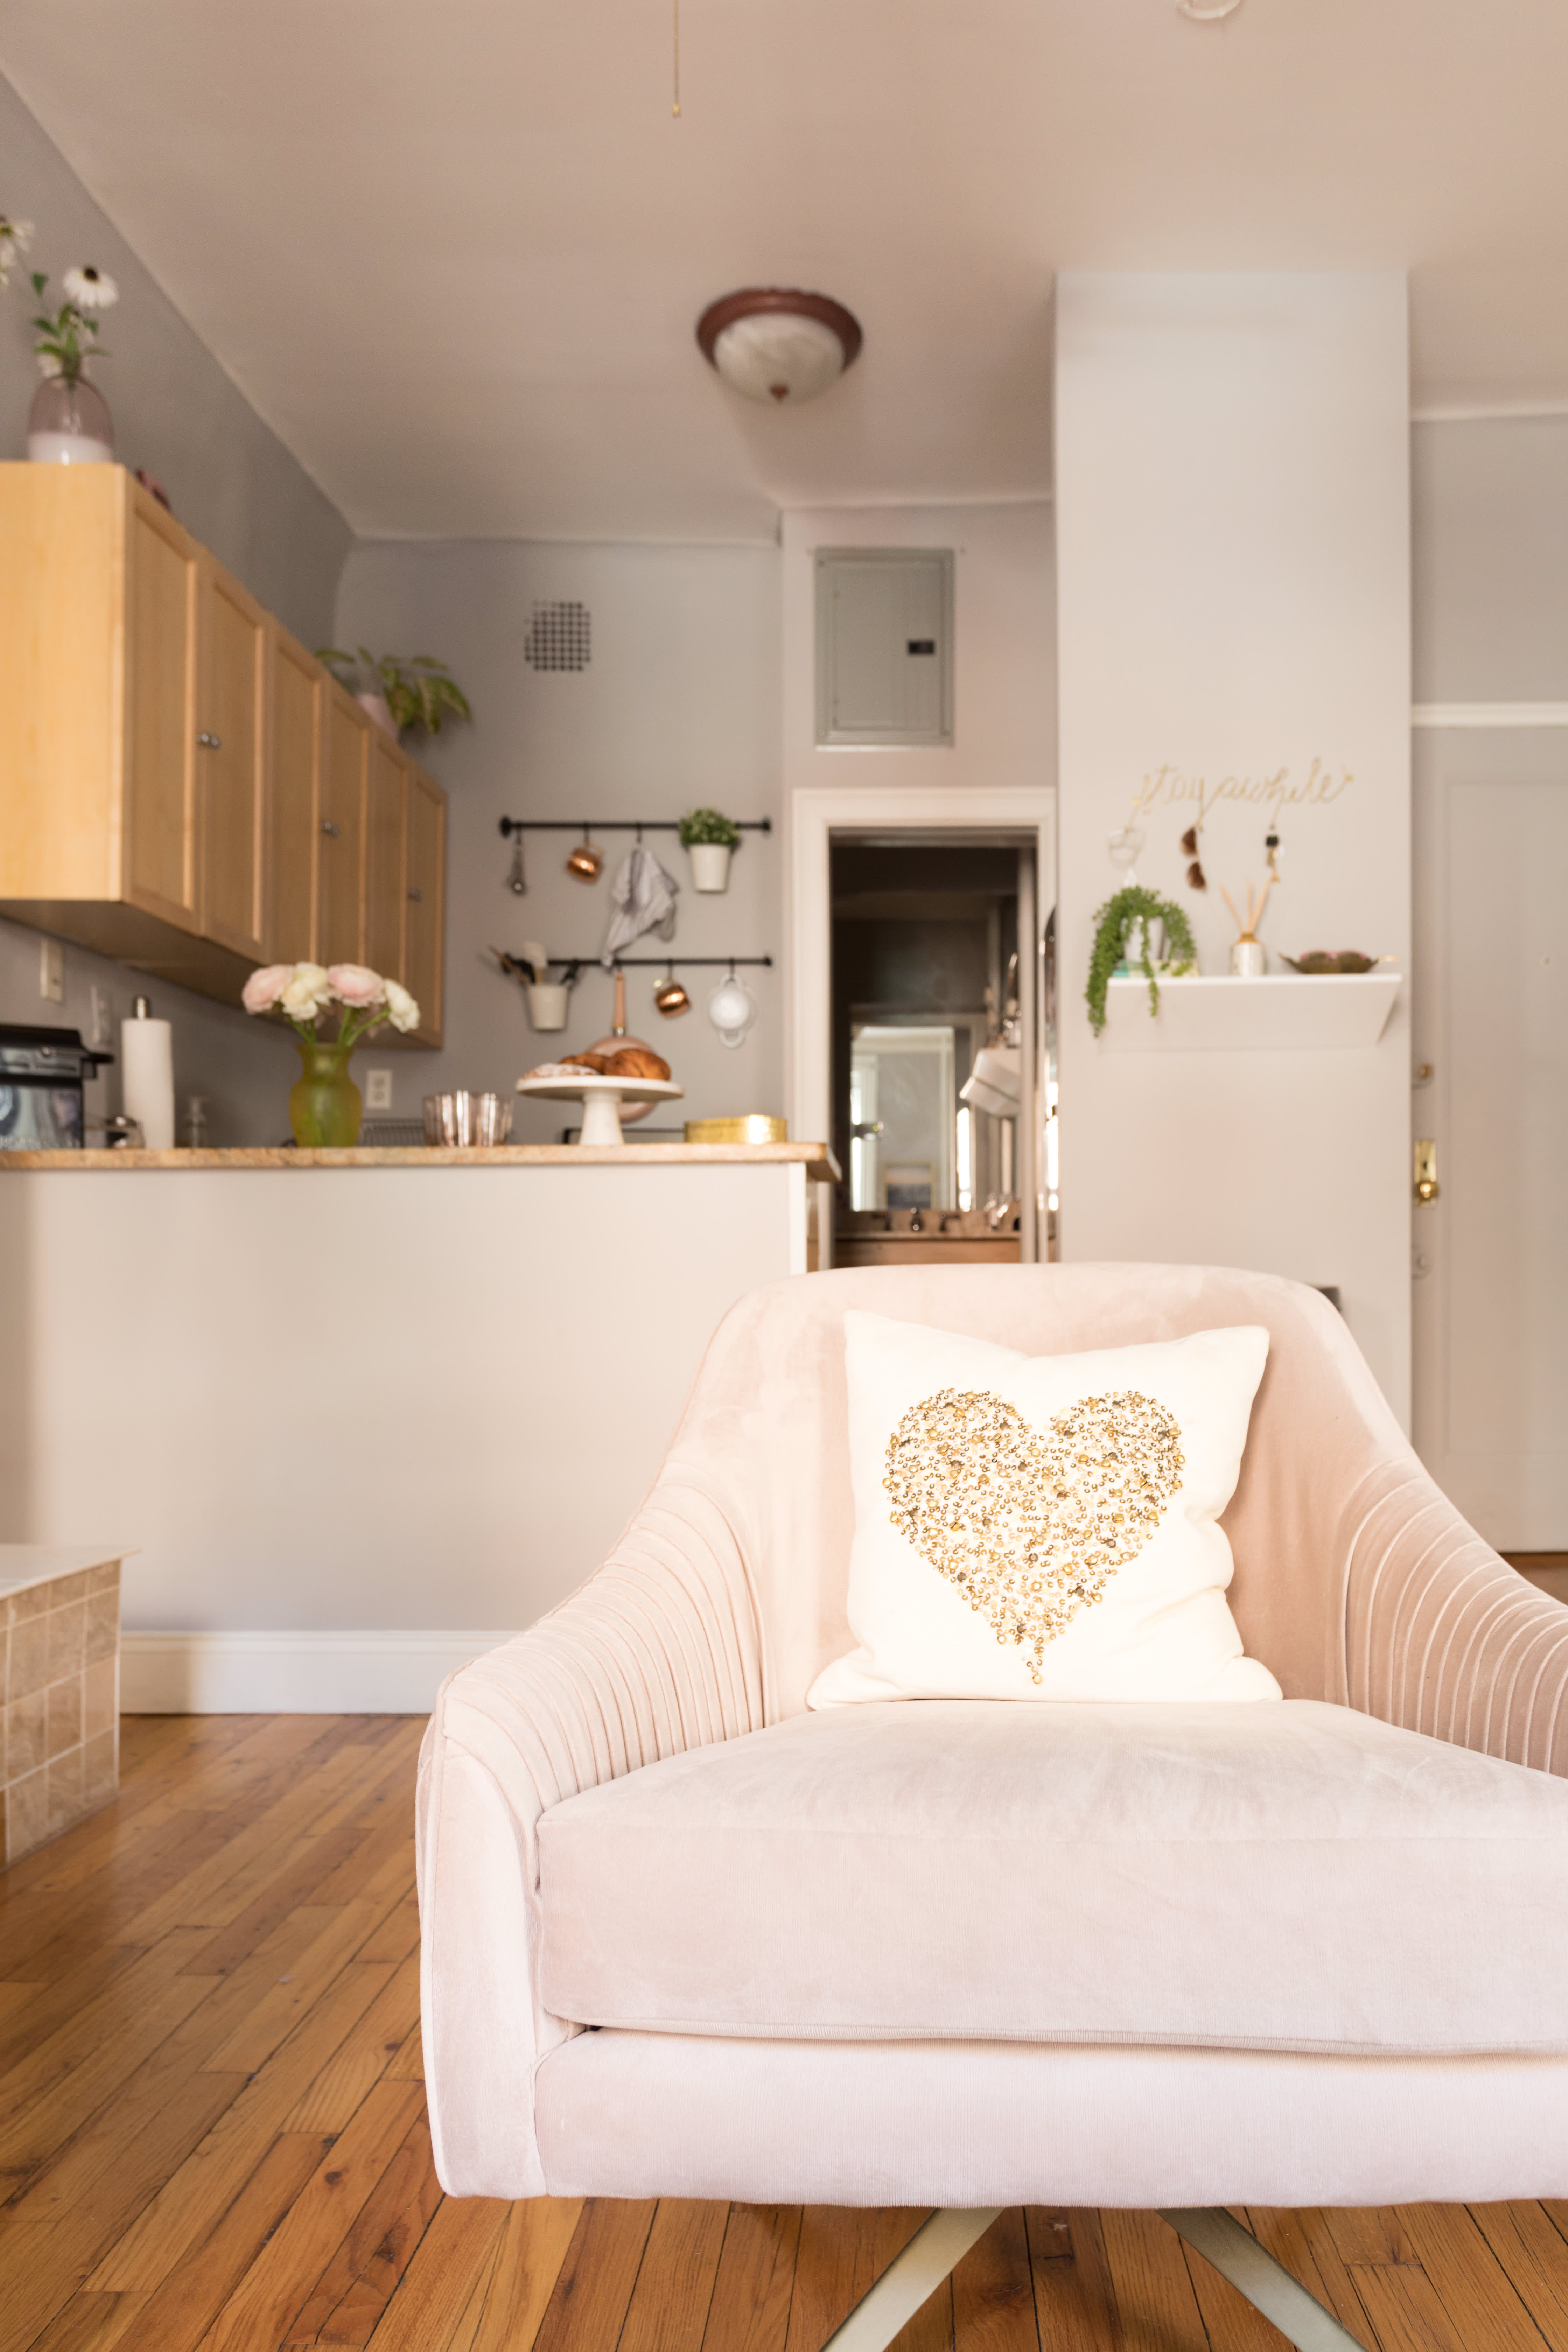 House Tour: A Cute 325 Square Foot NYC Studio | Apartment